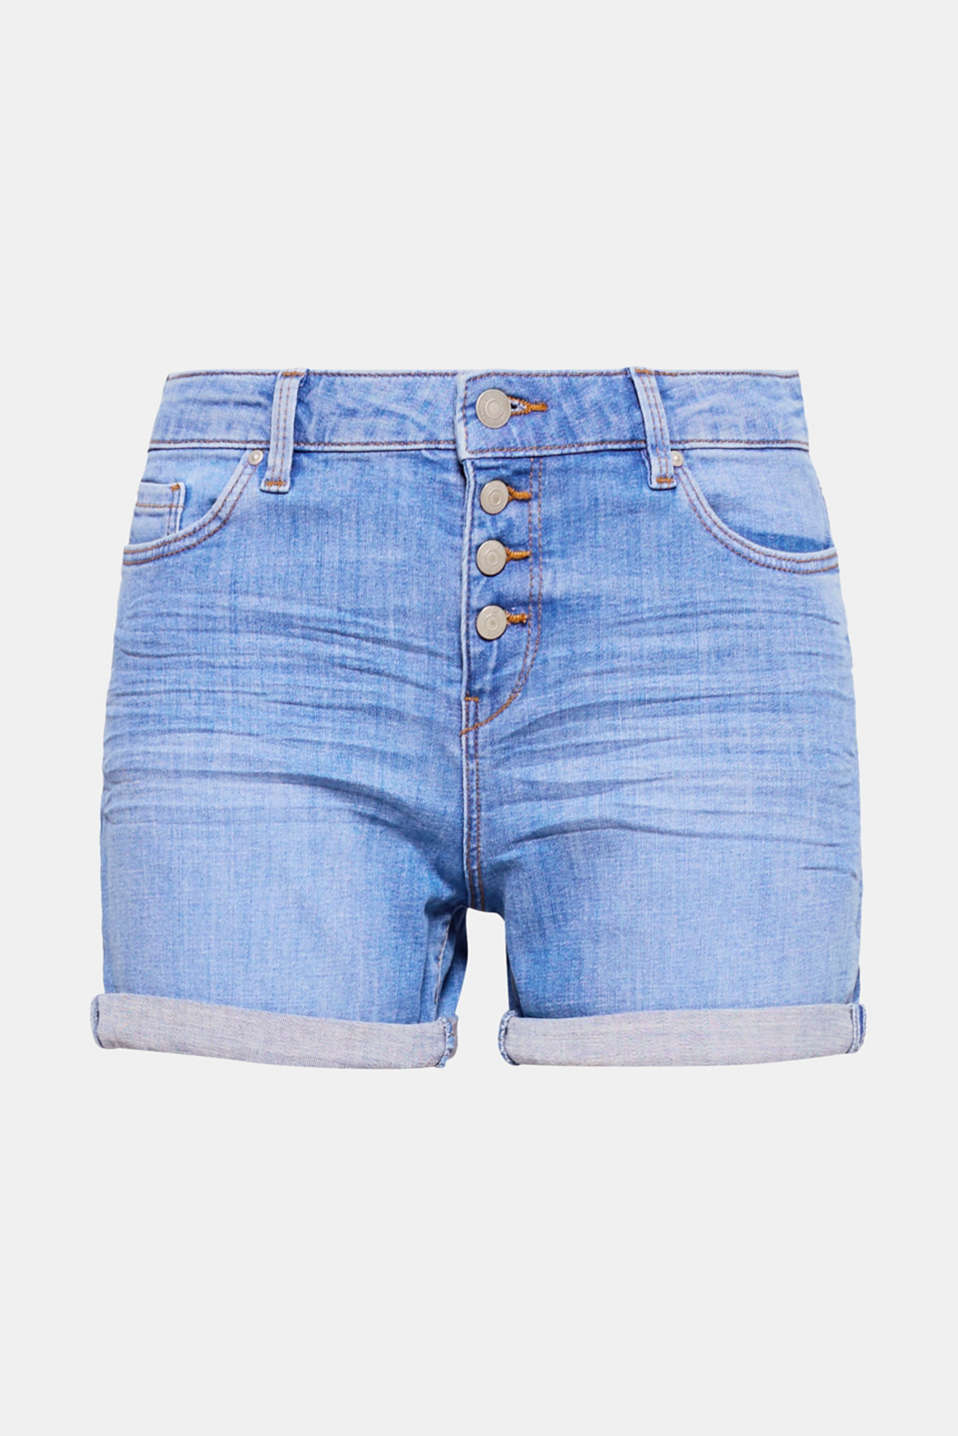 Perfect for summer! The button fly, fixed hem turn-ups and cool whiskering make these comfy and stretchy denim shorts look totally trendy.